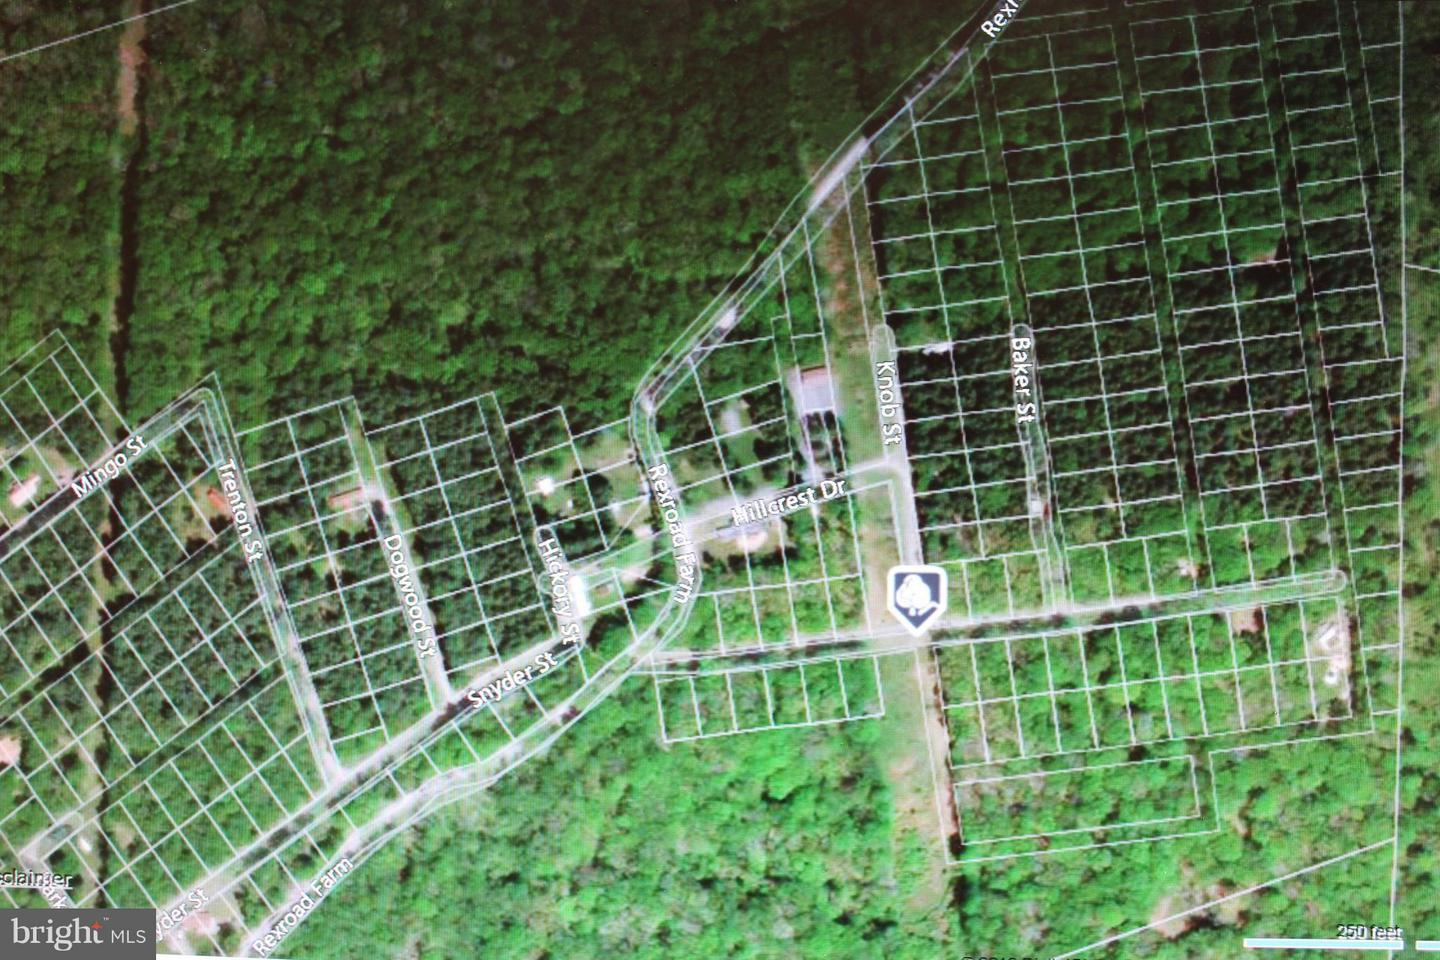 Land for Sale at Knob St Bruceton Mills, West Virginia 26525 United States